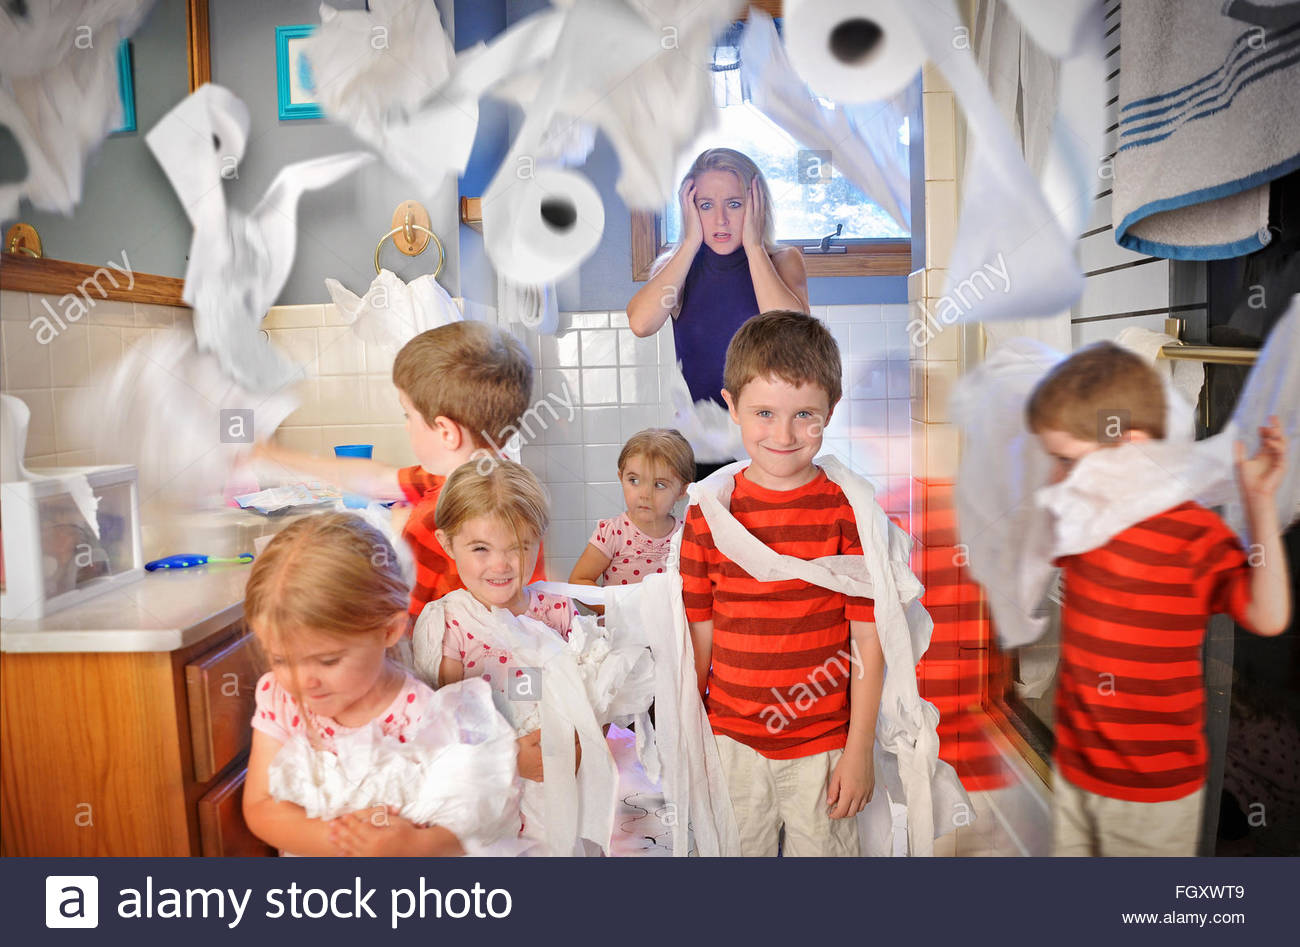 Desperate to use the bathroom - A Mother Is Shocked And Full Of Stress While The Children Make A Mess In The